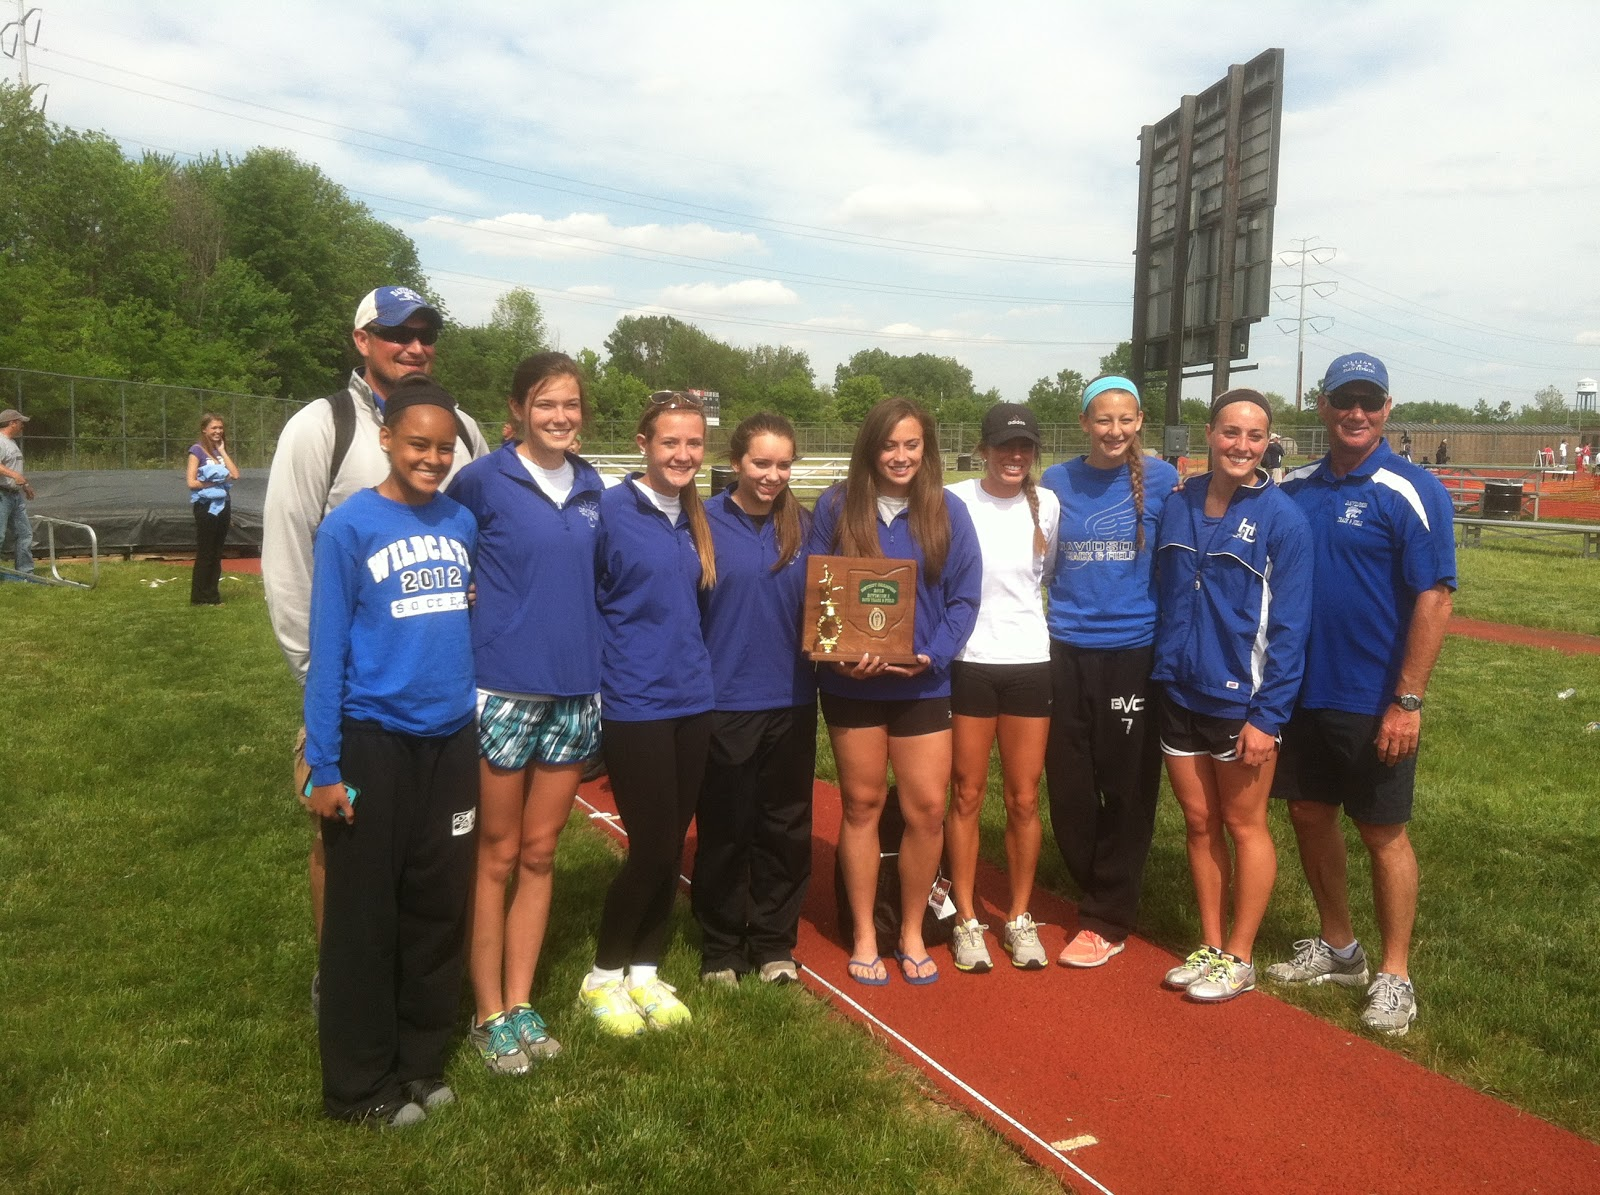 hilliards single girls This website will have basic information about the hilliard bradley girls cross country program, as well as camp information, apparel order forms, run-a-thon information, and updated meet.